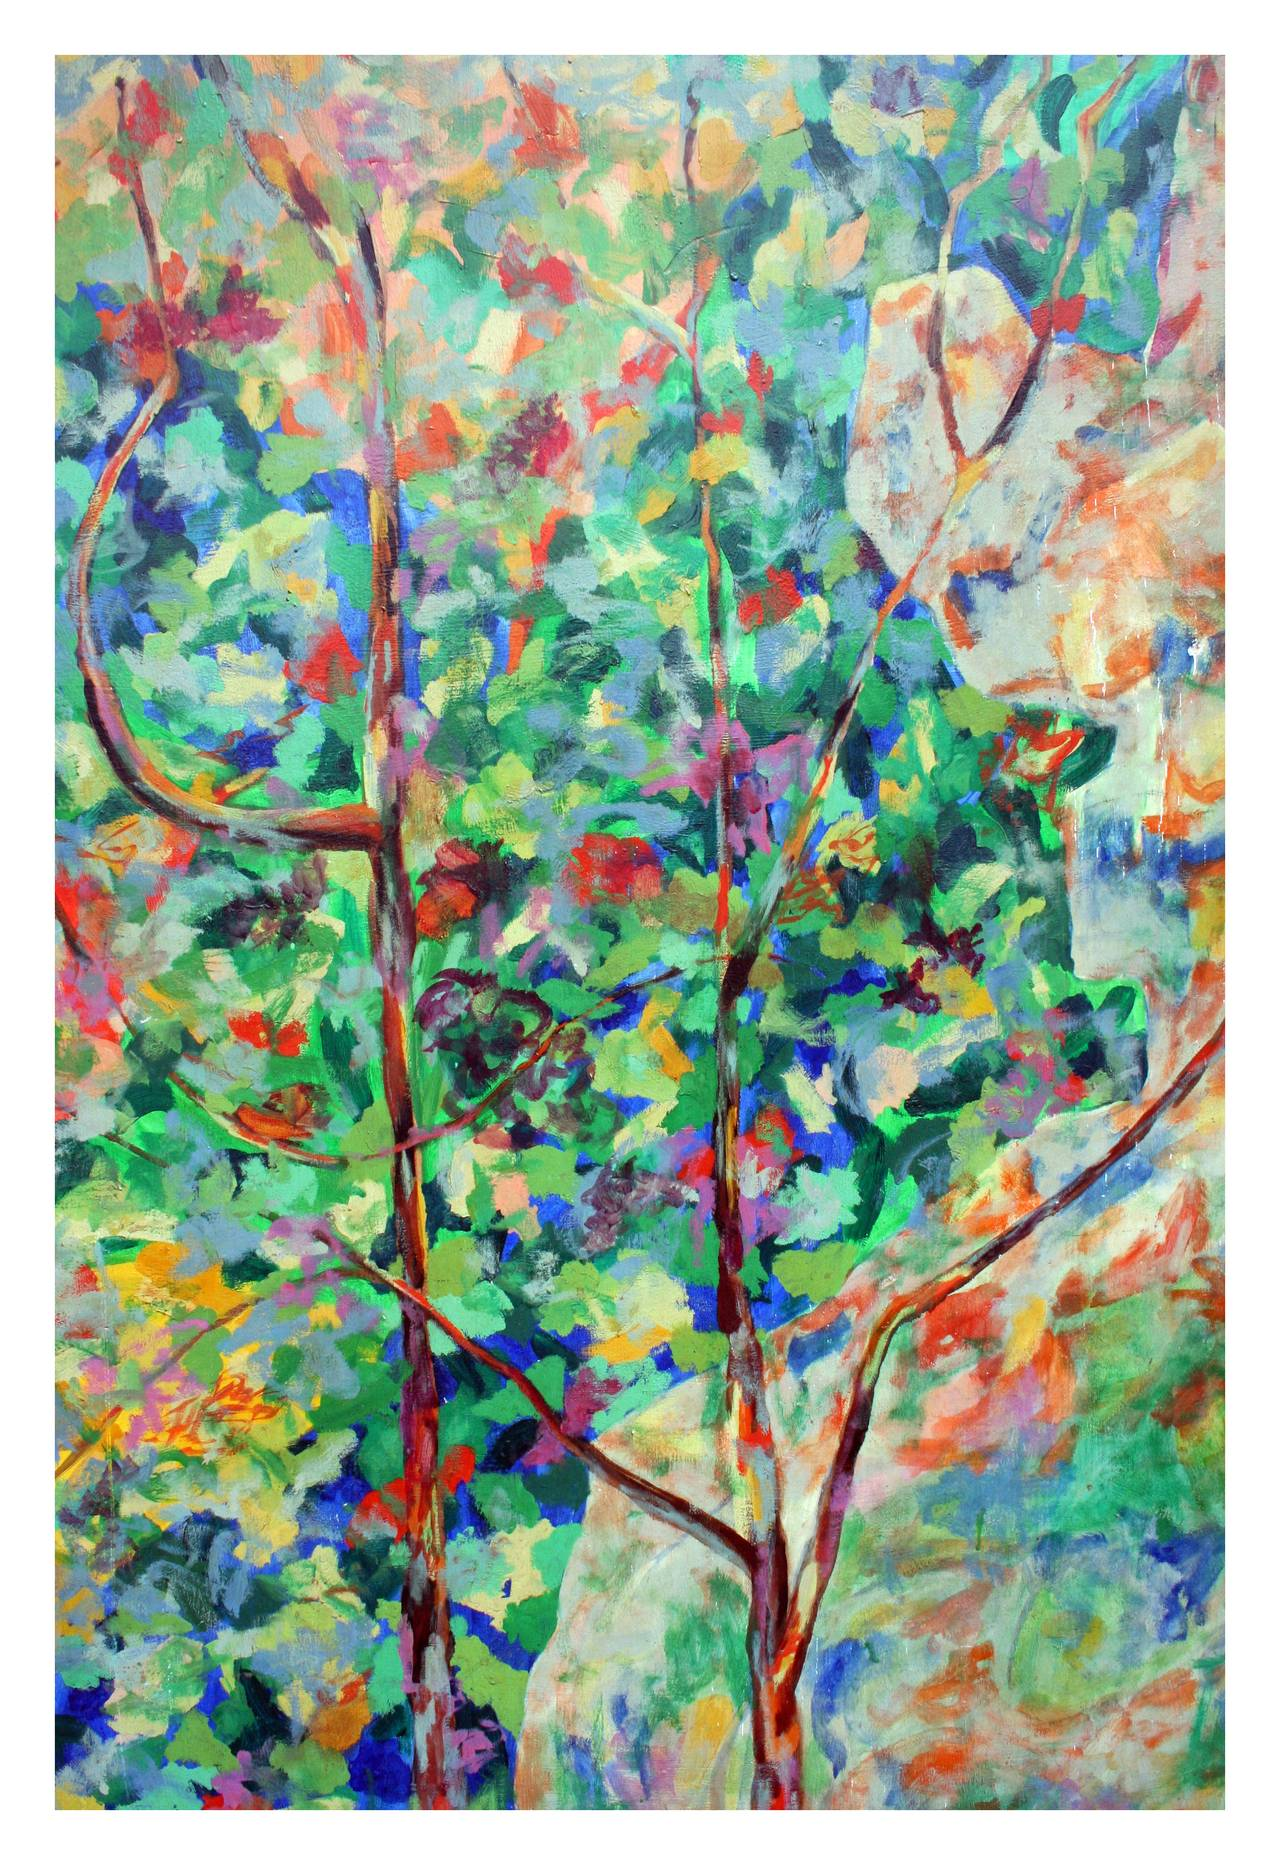 Wild The Flowers, Berkeley - Abstract Expressionist Painting by Louis Earnest Nadalini